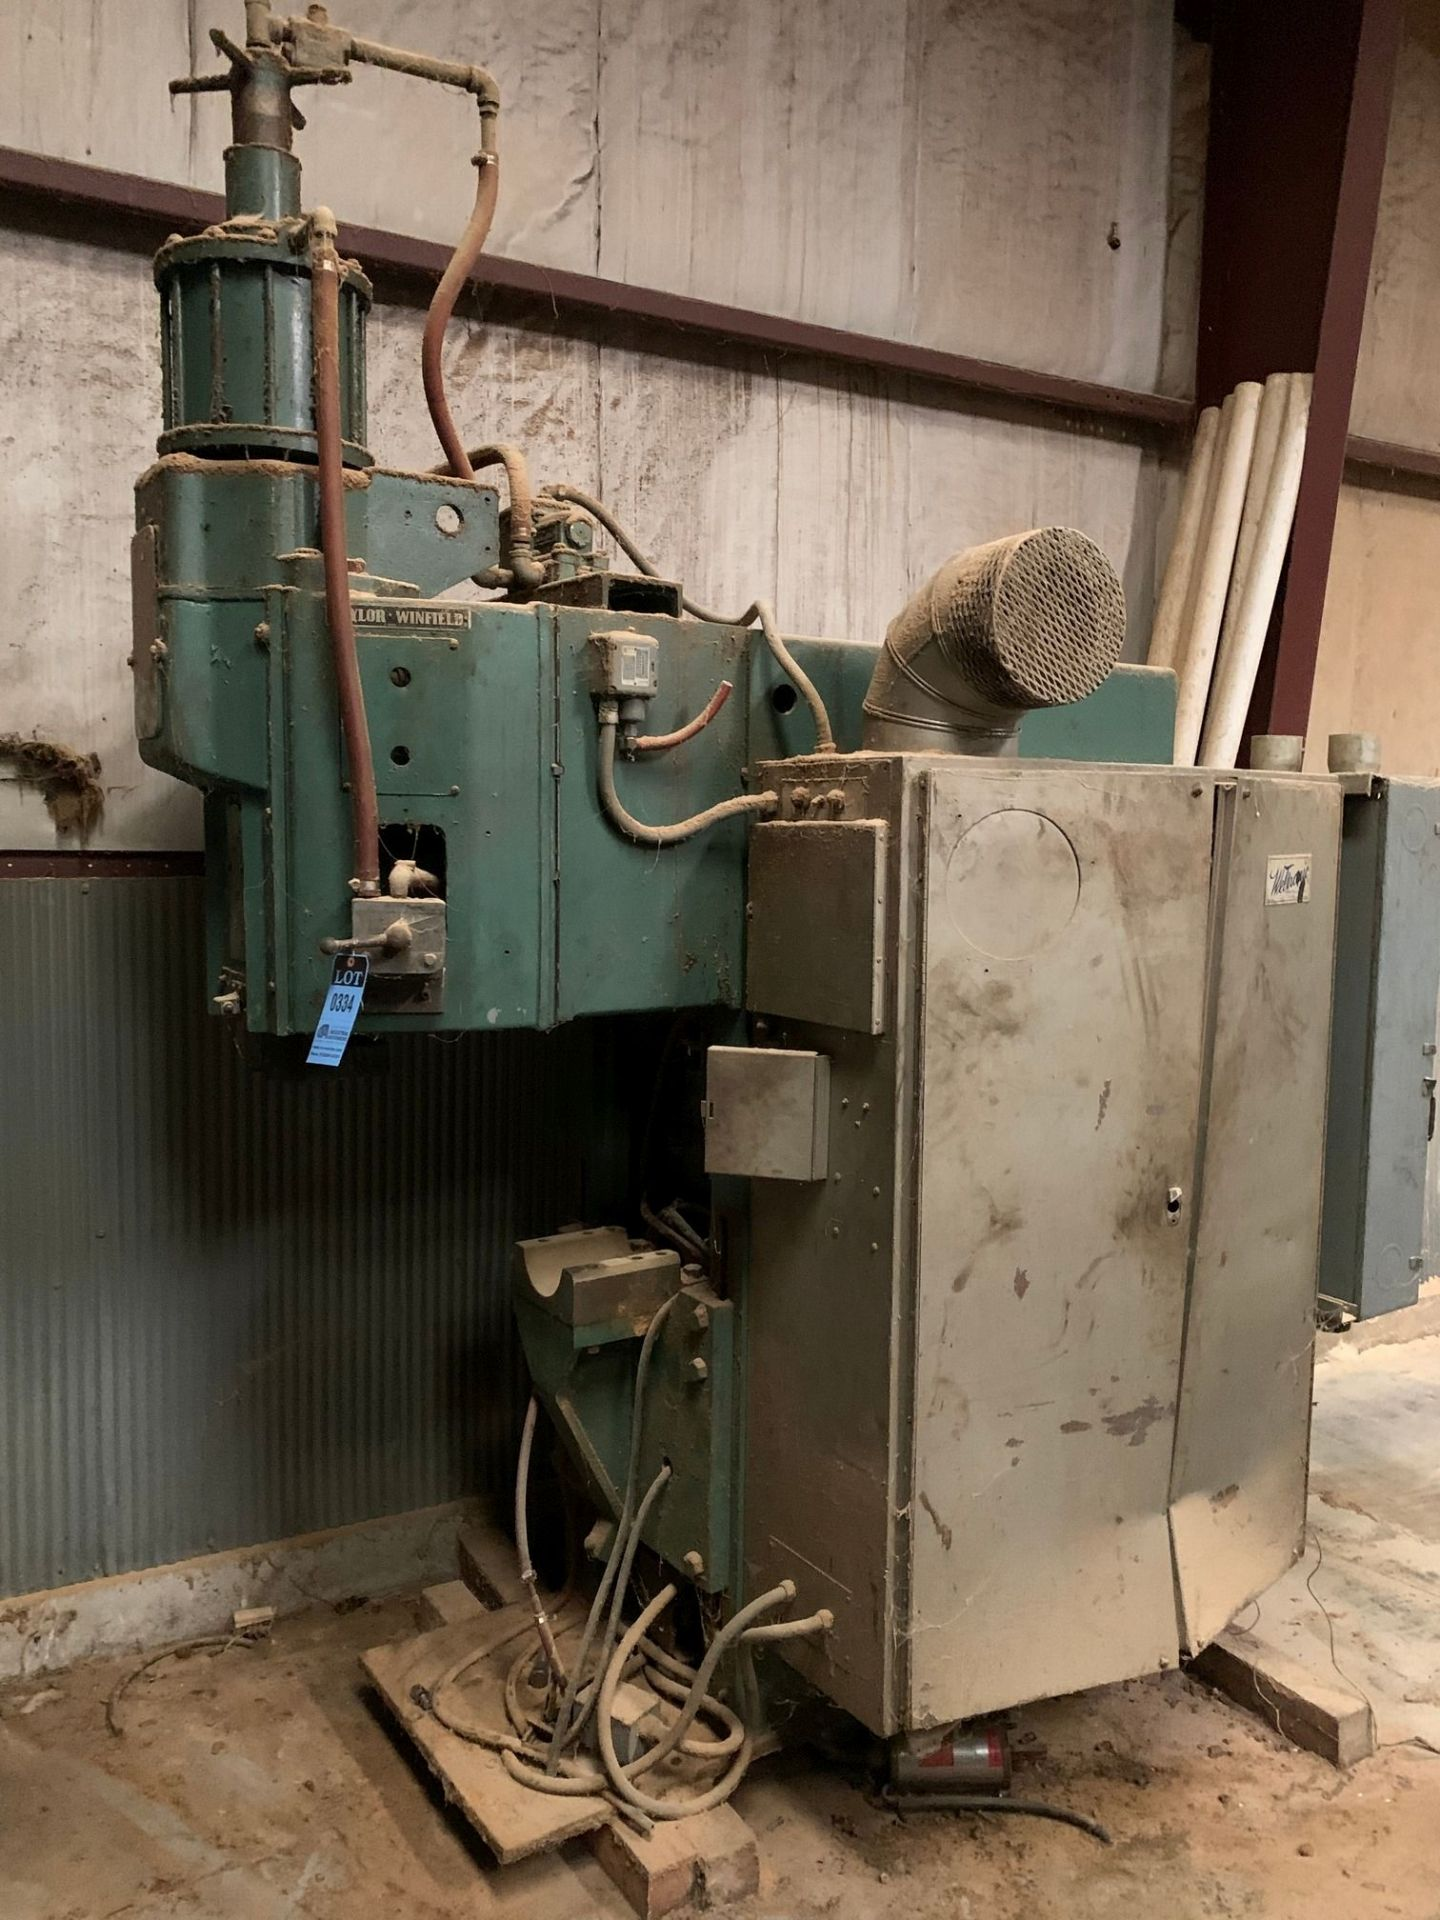 TAYLOR WINFIELD 200 KVA SPOT WELDER **MISSING ARMS** - Image 2 of 4